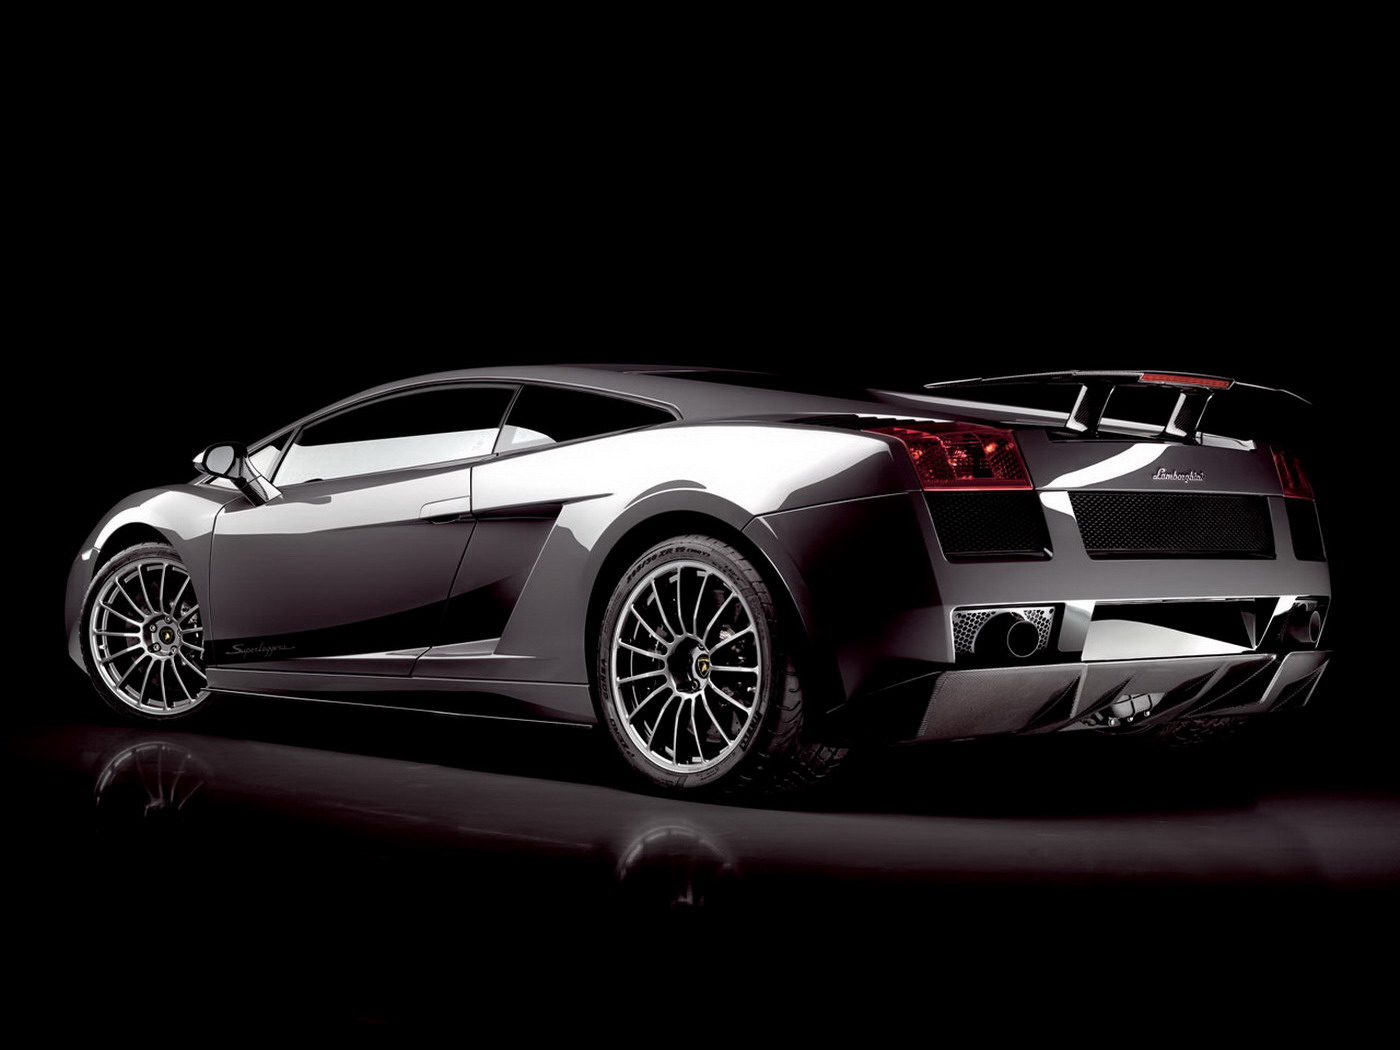 amazing and dashing car wallpapers in hd - warner buzz